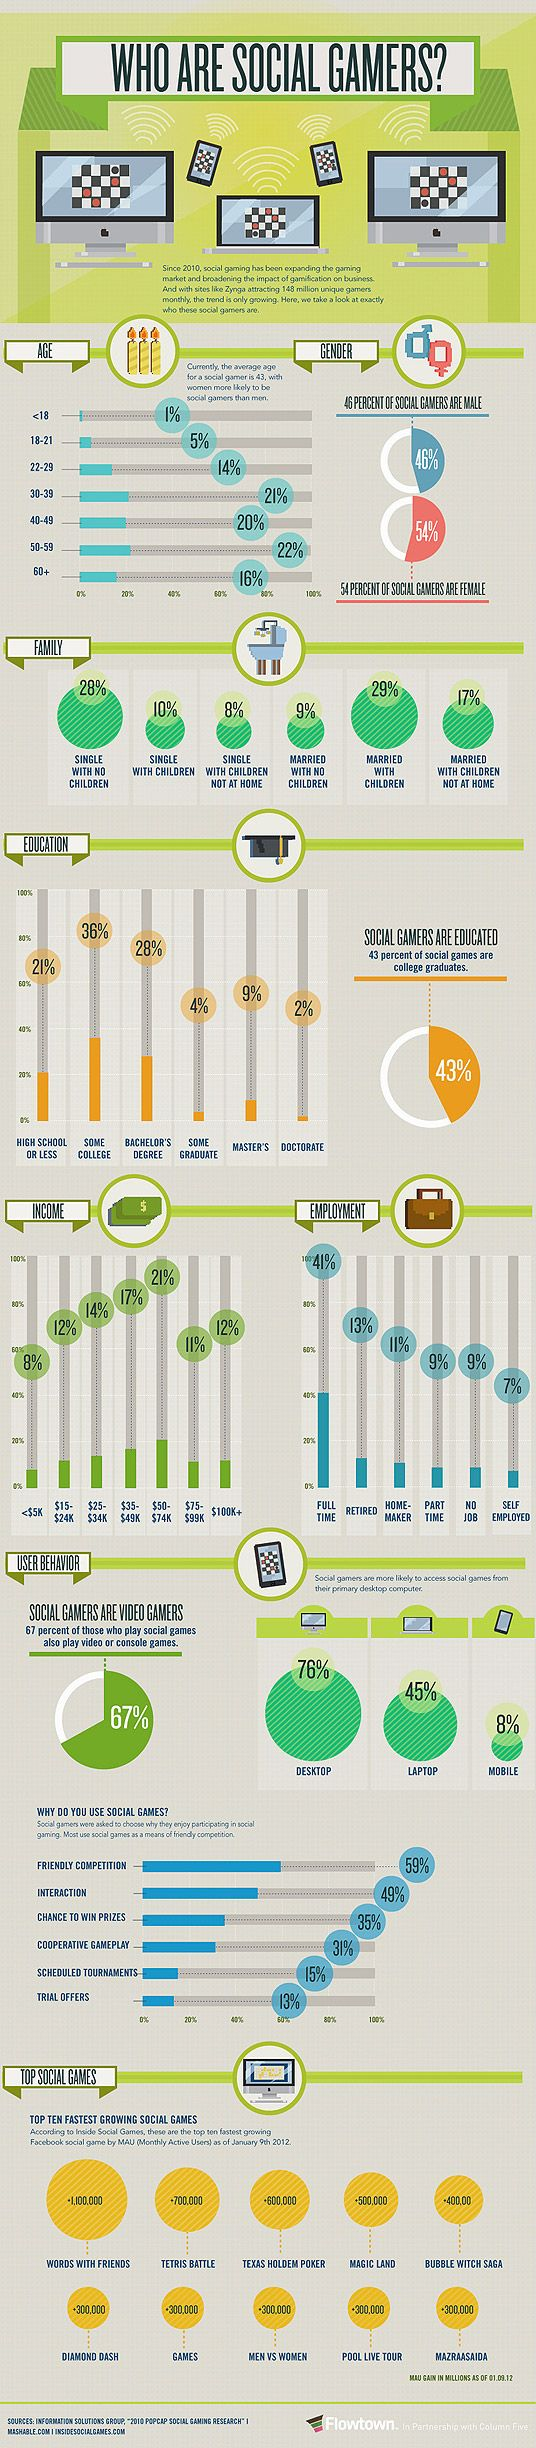 The demography of social gaming #infographic